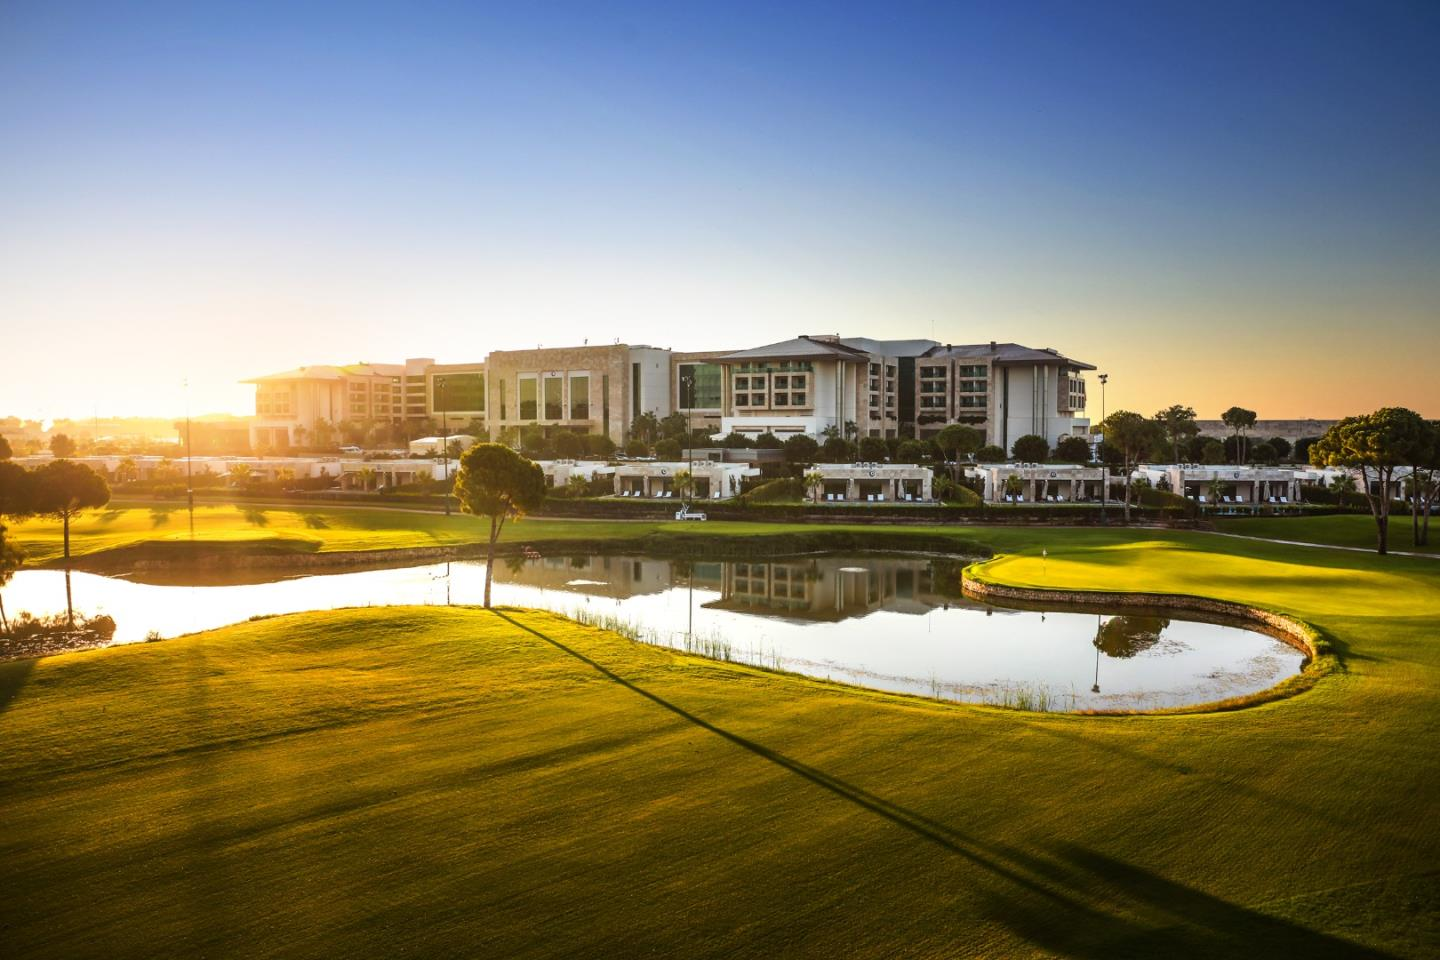 Regnum Carya 5* - 7 Nights All Inclusive, 2 Rounds